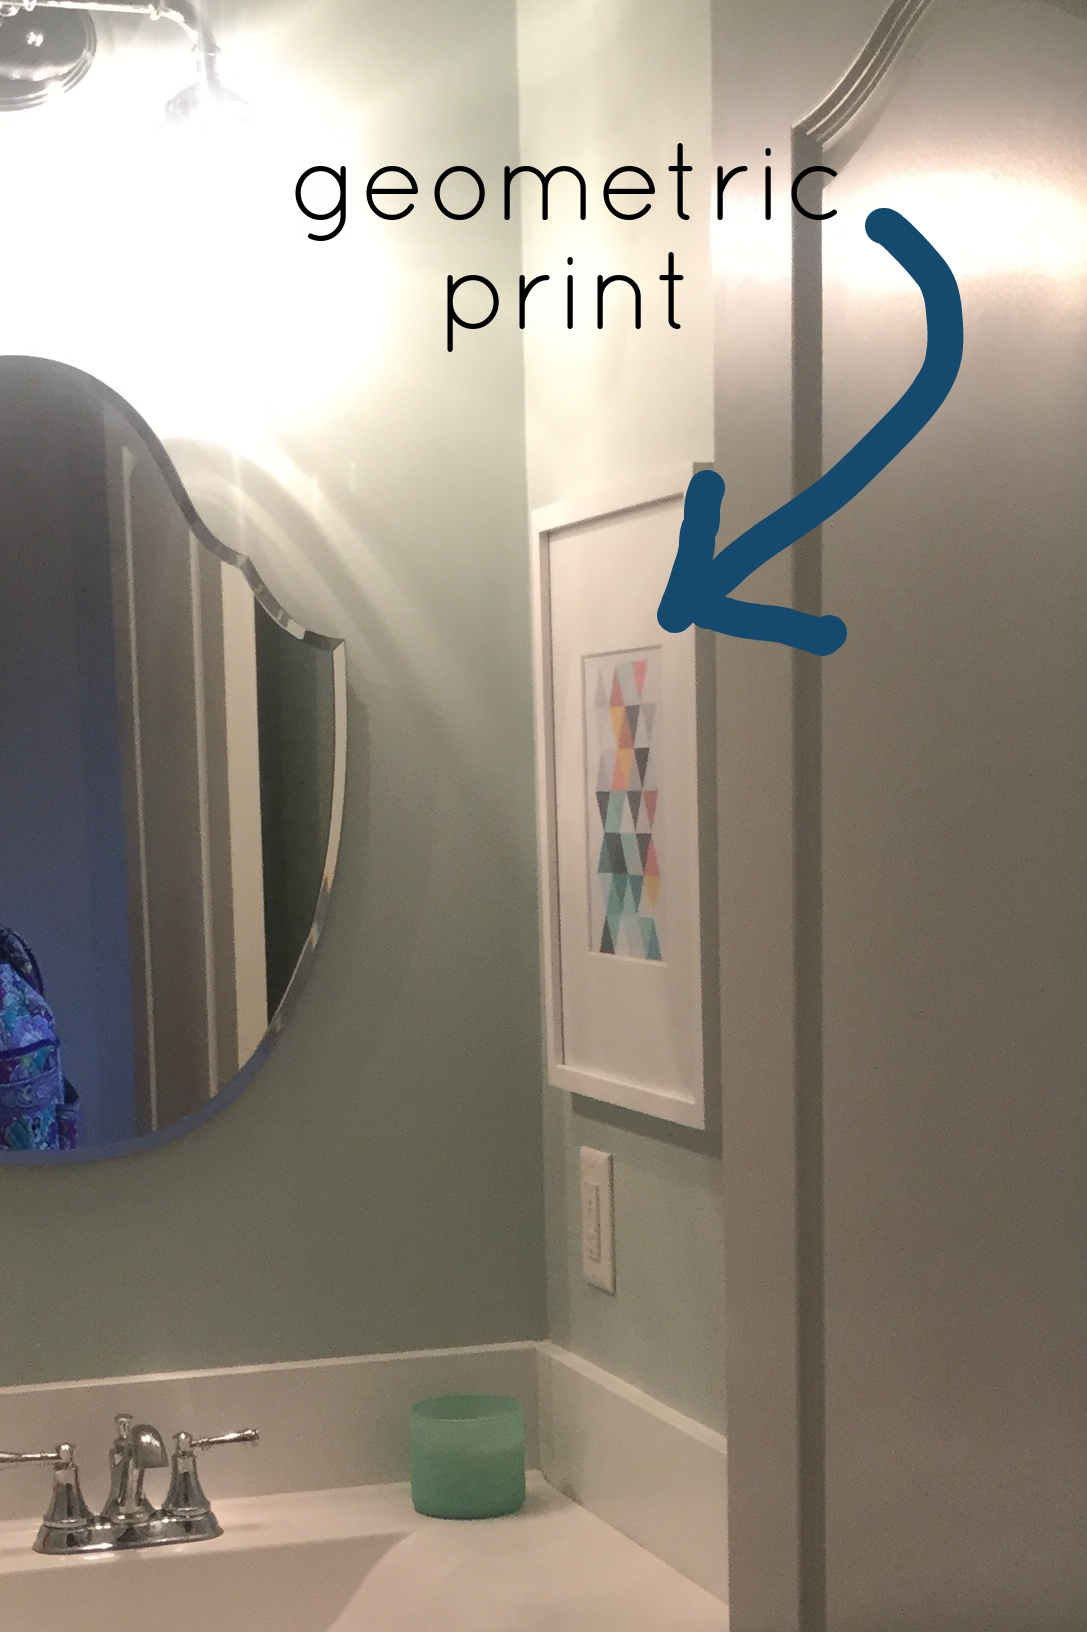 A bit difficult to see it, but, there is a great geometric print hanging to the right of the mirror. See it? (follow giant arrow)